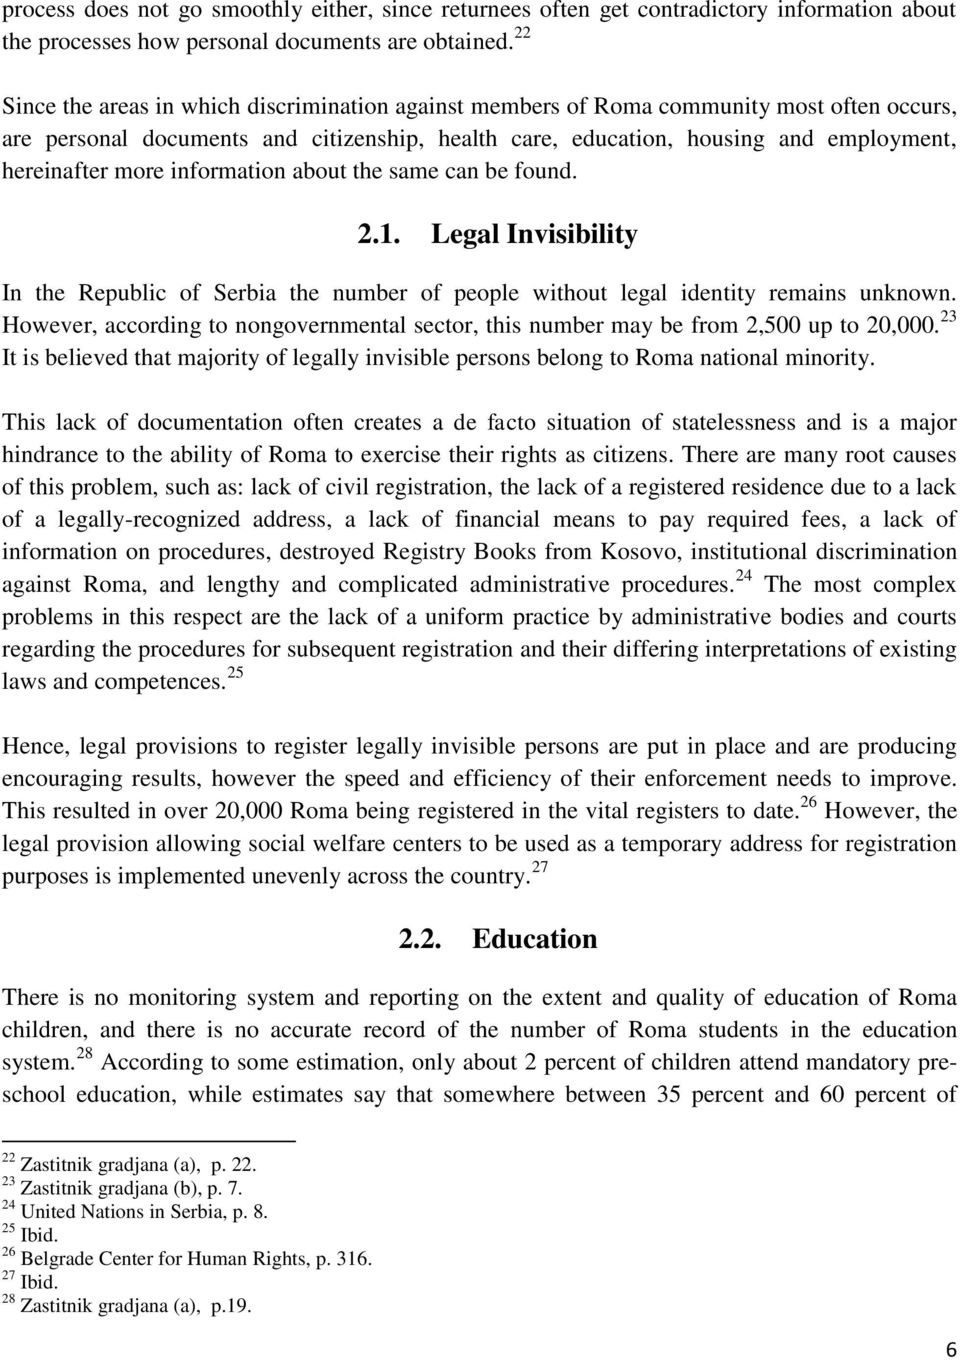 more information about the same can be found. 2.1. Legal Invisibility In the Republic of Serbia the number of people without legal identity remains unknown.